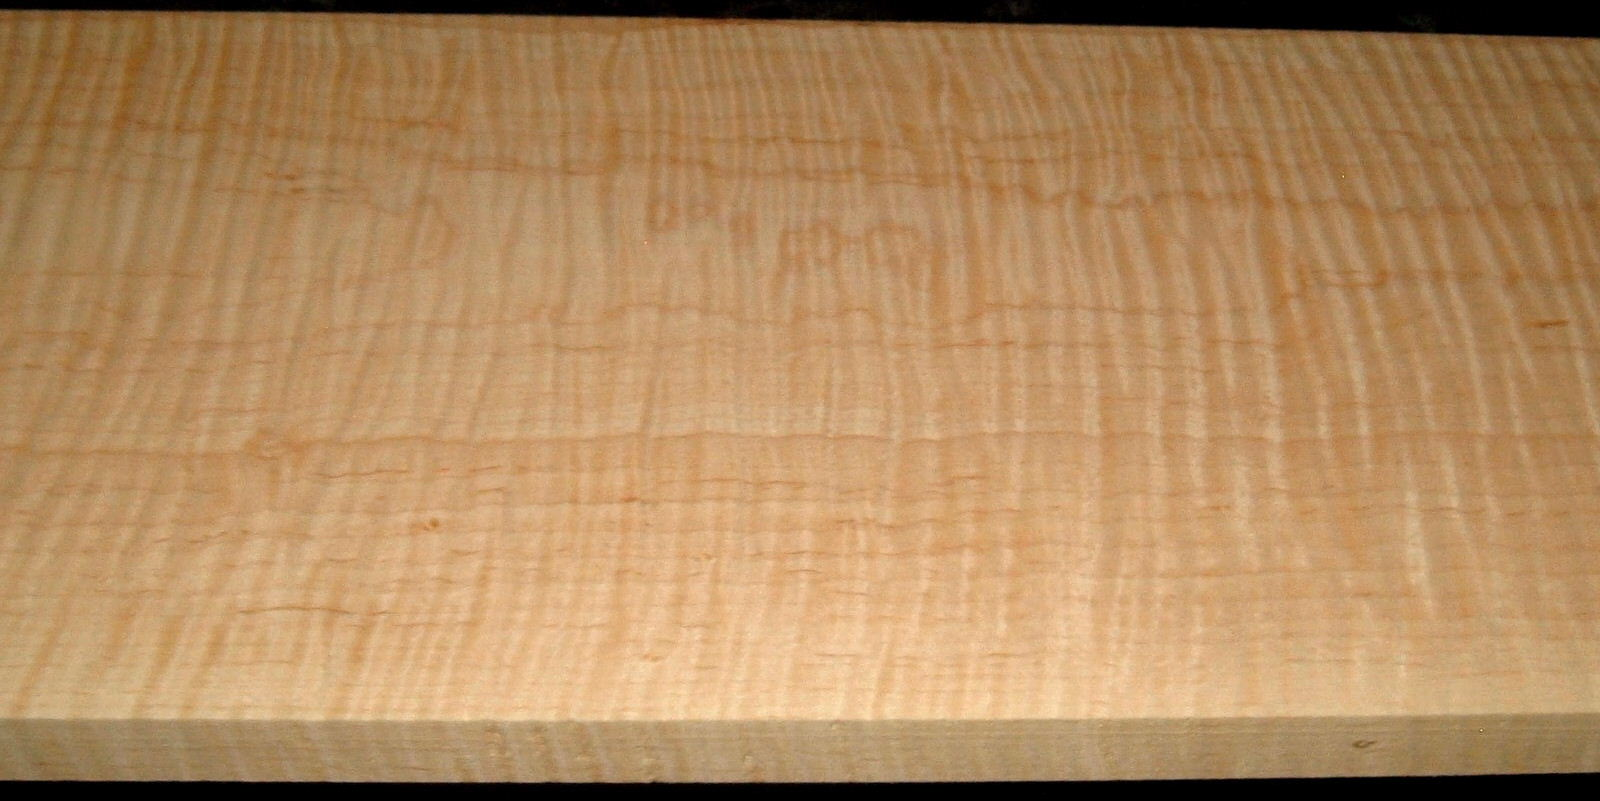 M2001-84, 3/4x8-1/8x40, Curly Tiger Maple